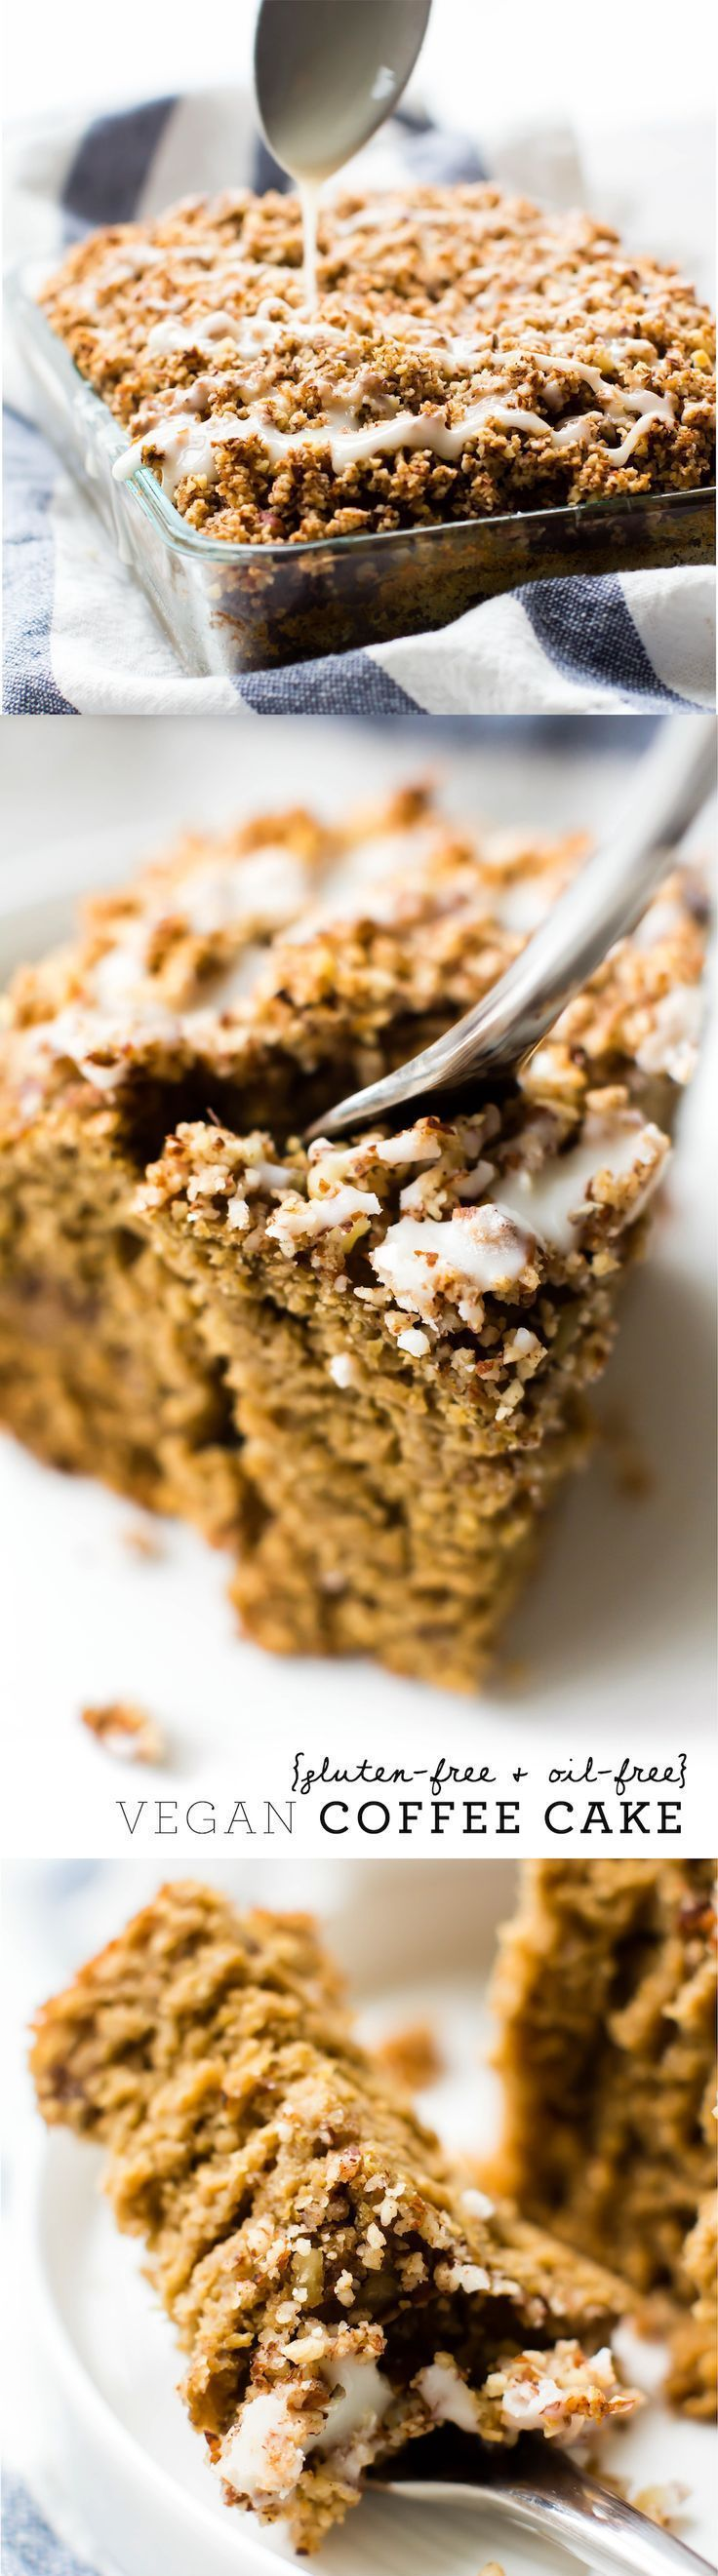 Moist fluffy oat flour cake with two layers of cinnamon streusel and a silky glaze on top--this Vegan Coffee Cake is a delectable baked morning treat! #glutenfree #oilfree #healthy